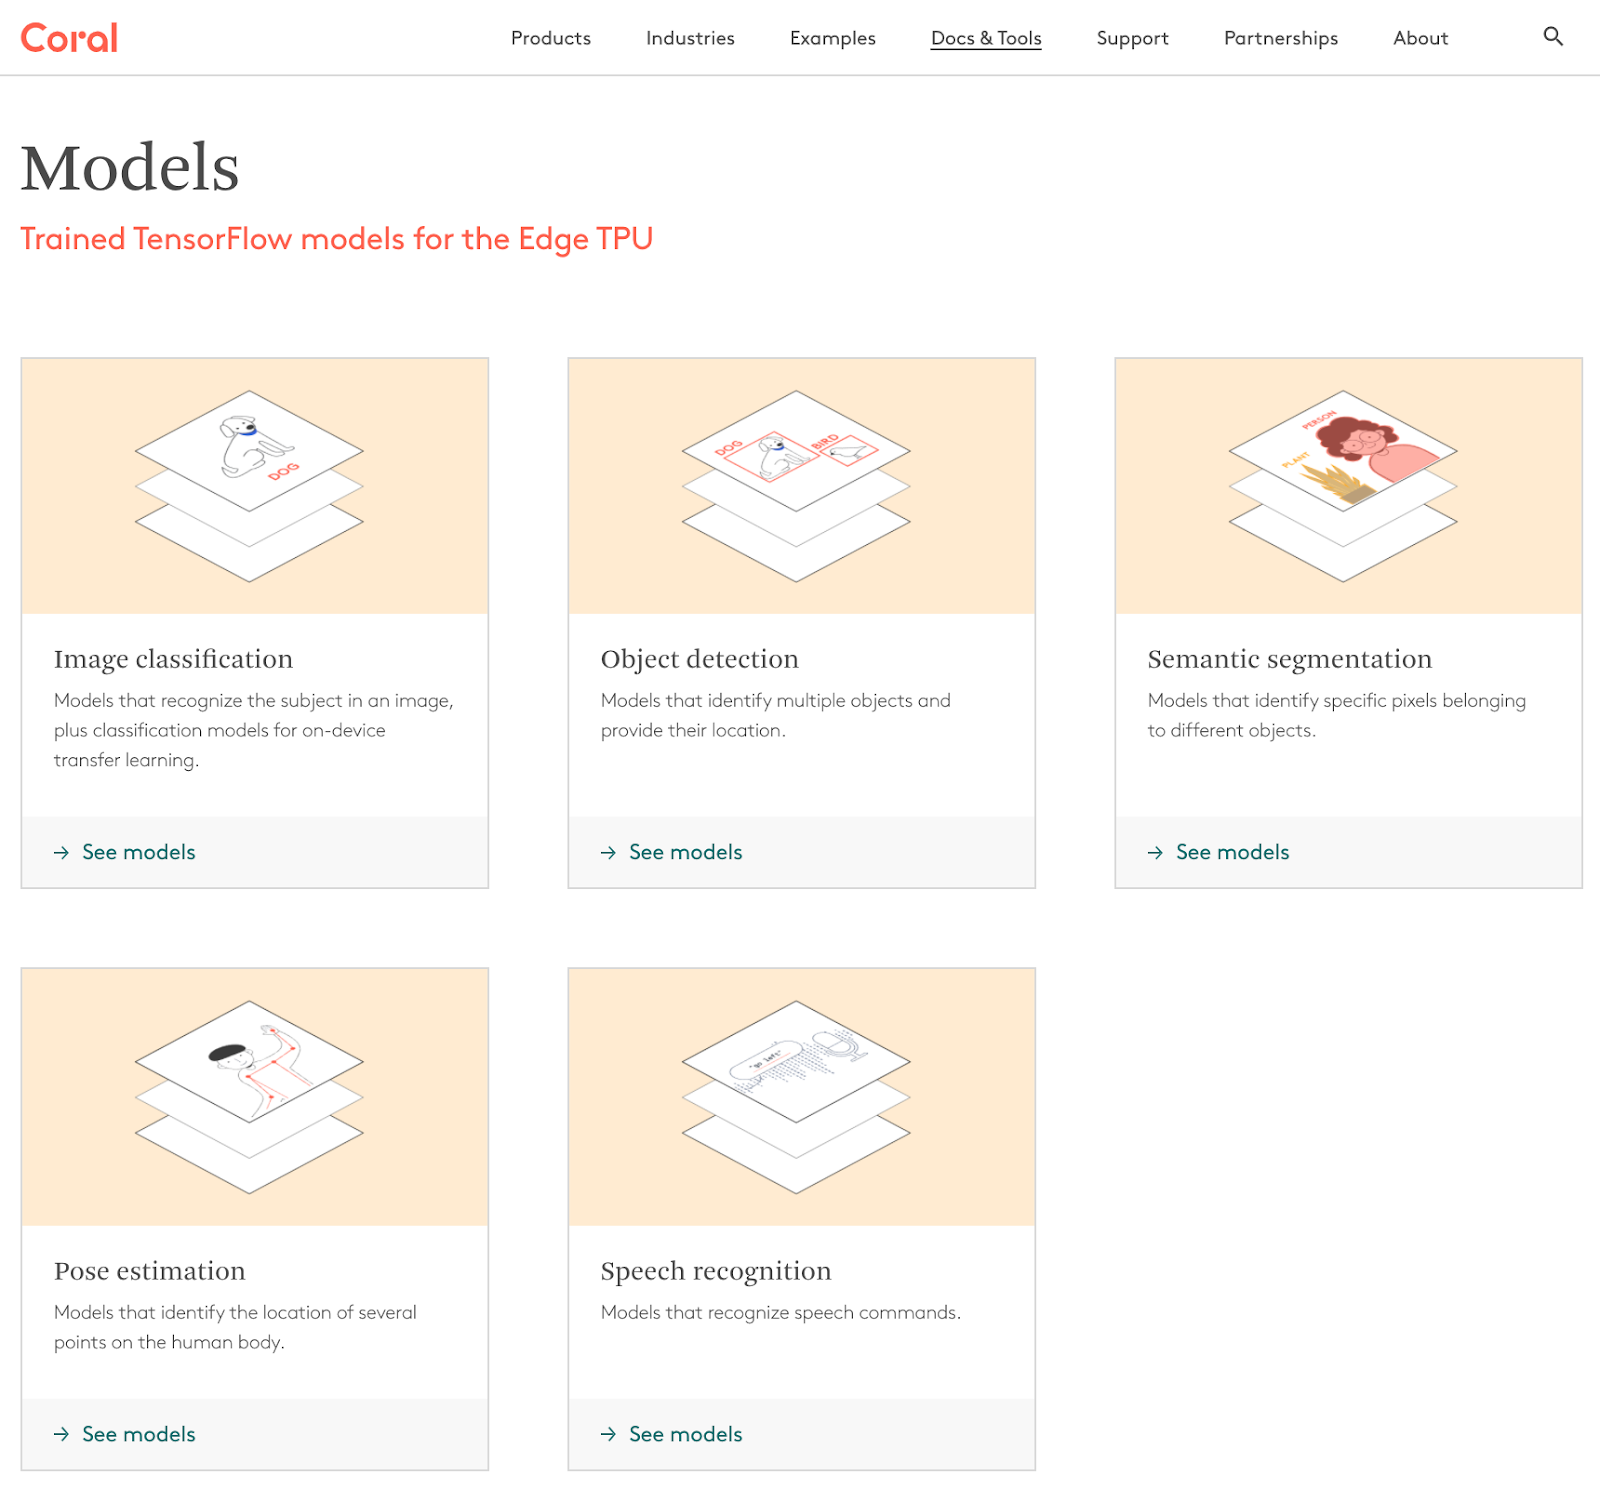 Models, trained TensorFlow models for the Edge TPU